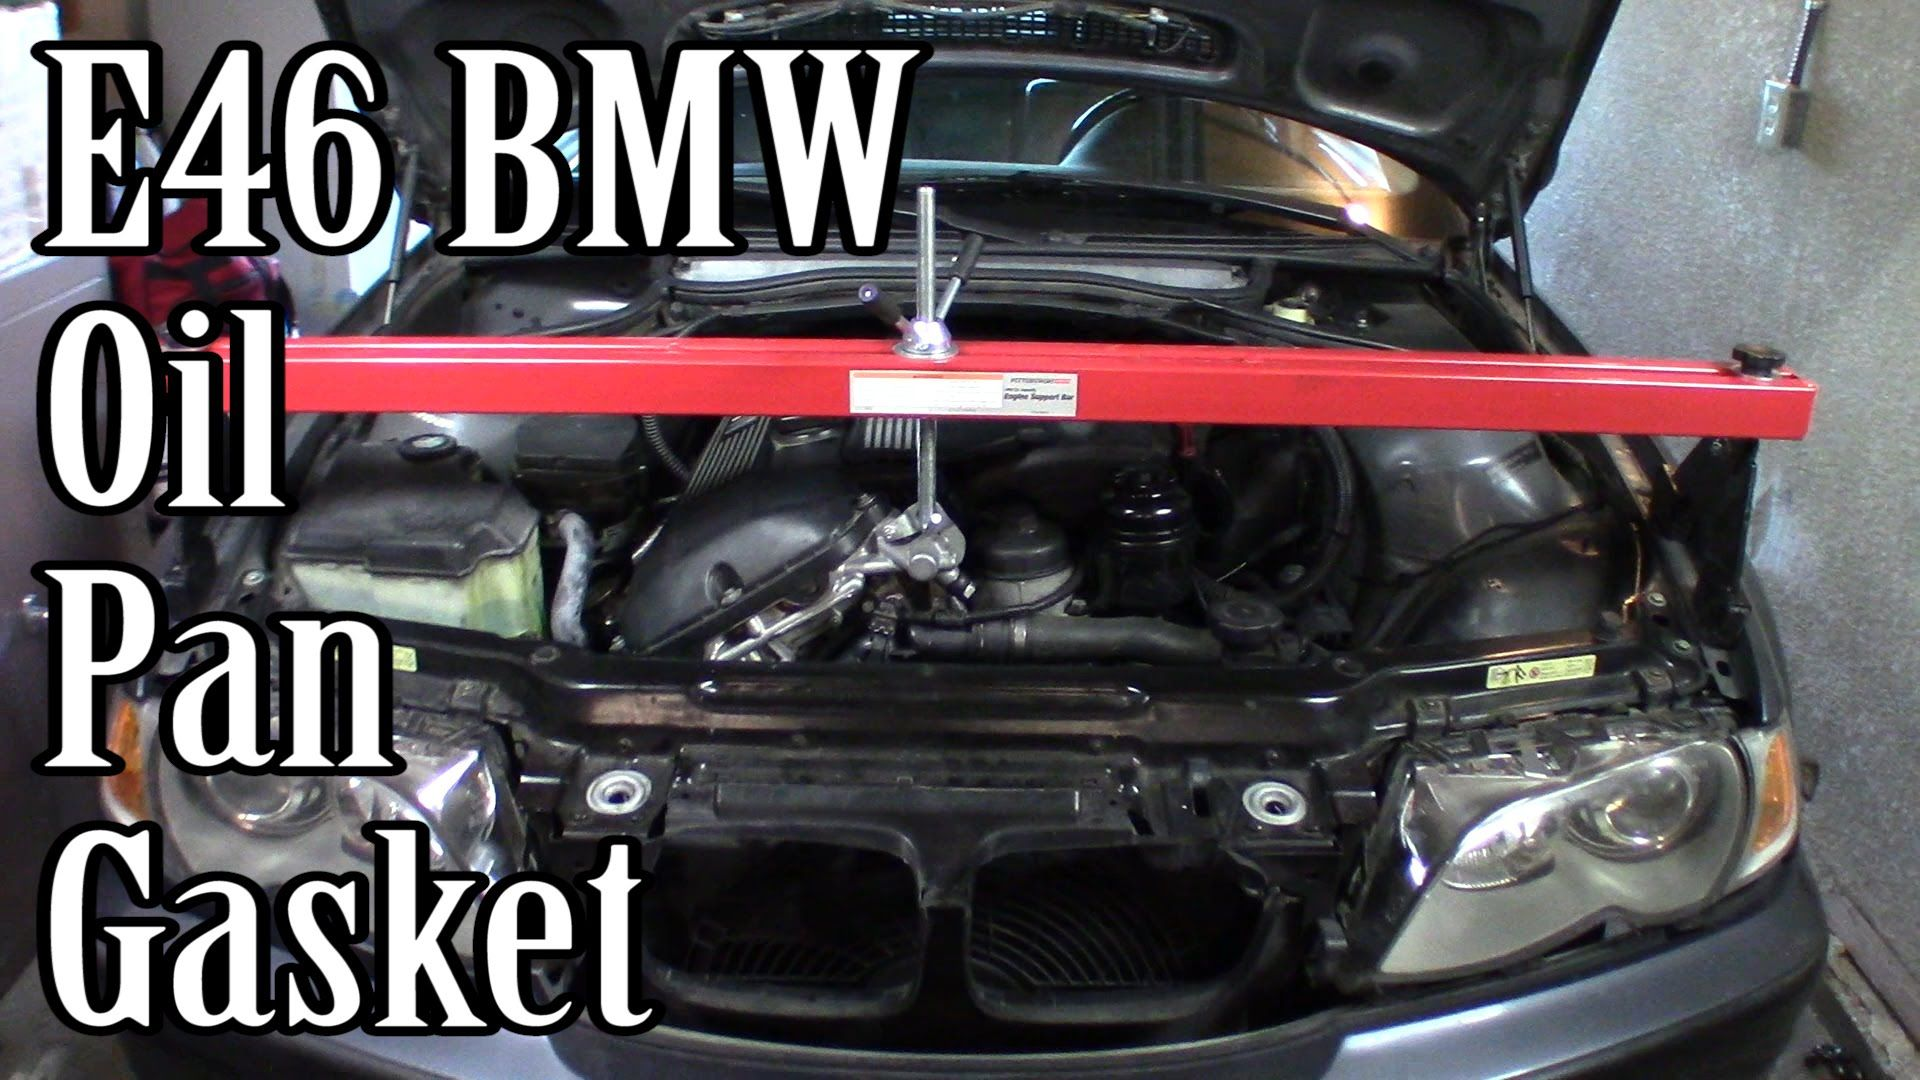 Httpstrictlyforeignzthe photo albumml bmw 330i 325i e46 make sure you check out the common repair step fandeluxe Images